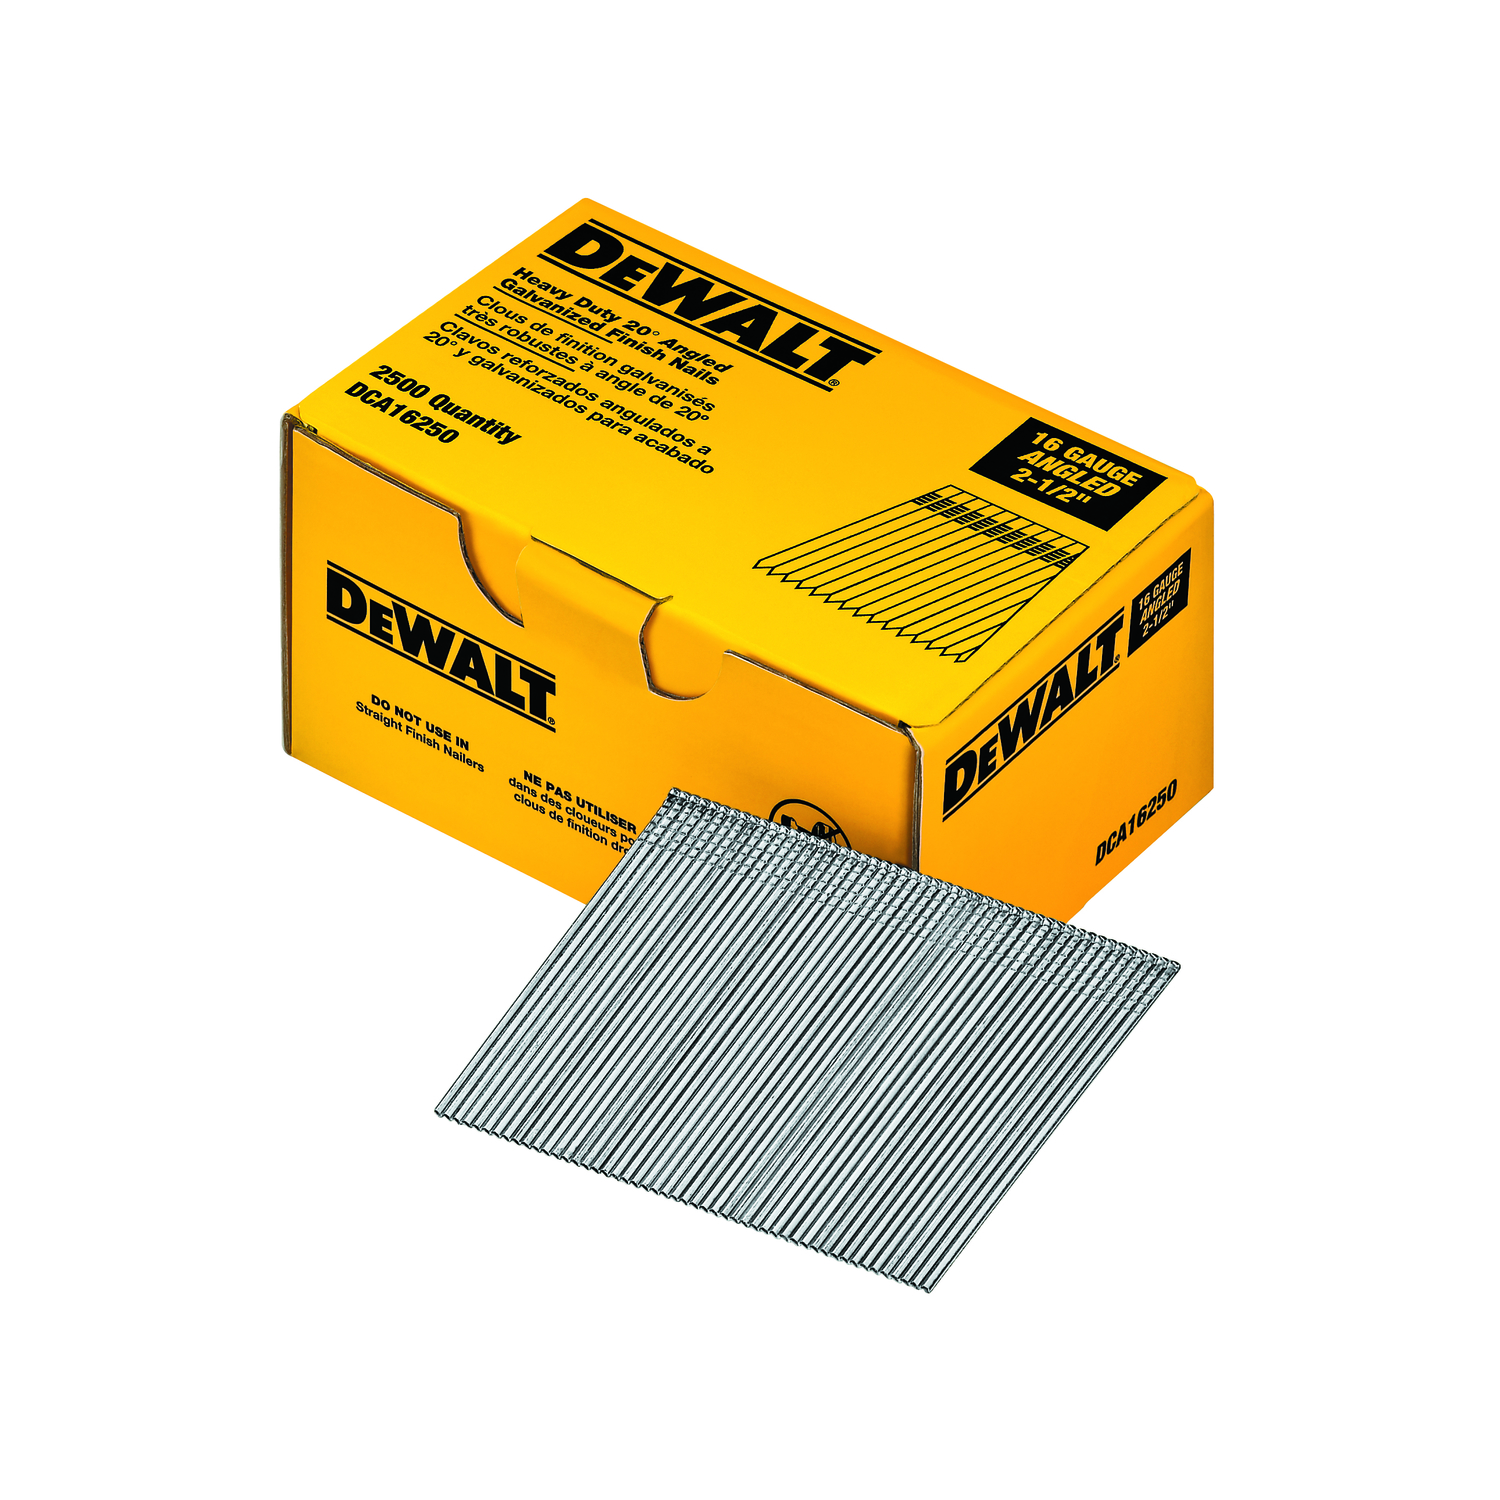 DeWalt 2-1/2 in. 16 Ga. Angled Strip Finish Nails 20 deg. Smooth Shank 2500 pk